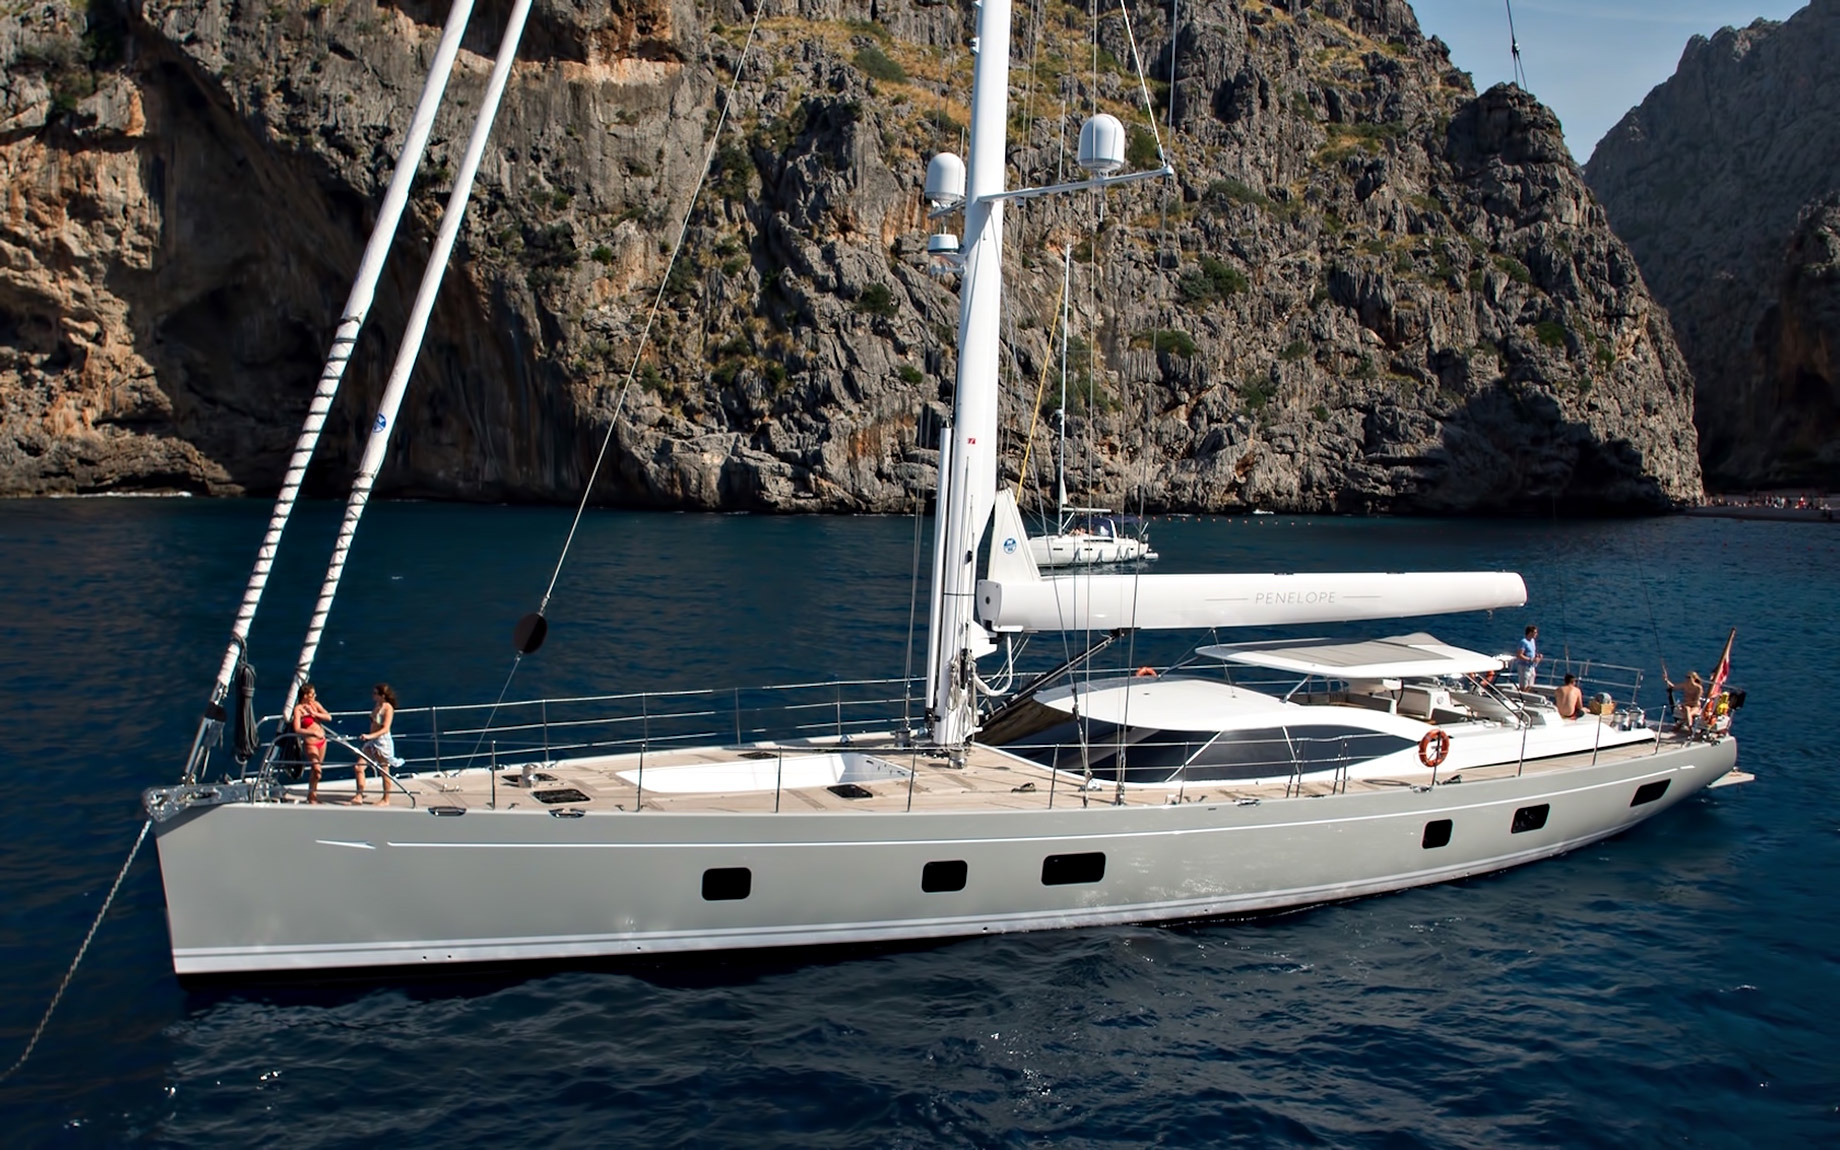 Get Straight Out On The Water - Oyster 100 Penelope - Step Inside A Luxury British Sailing Yacht